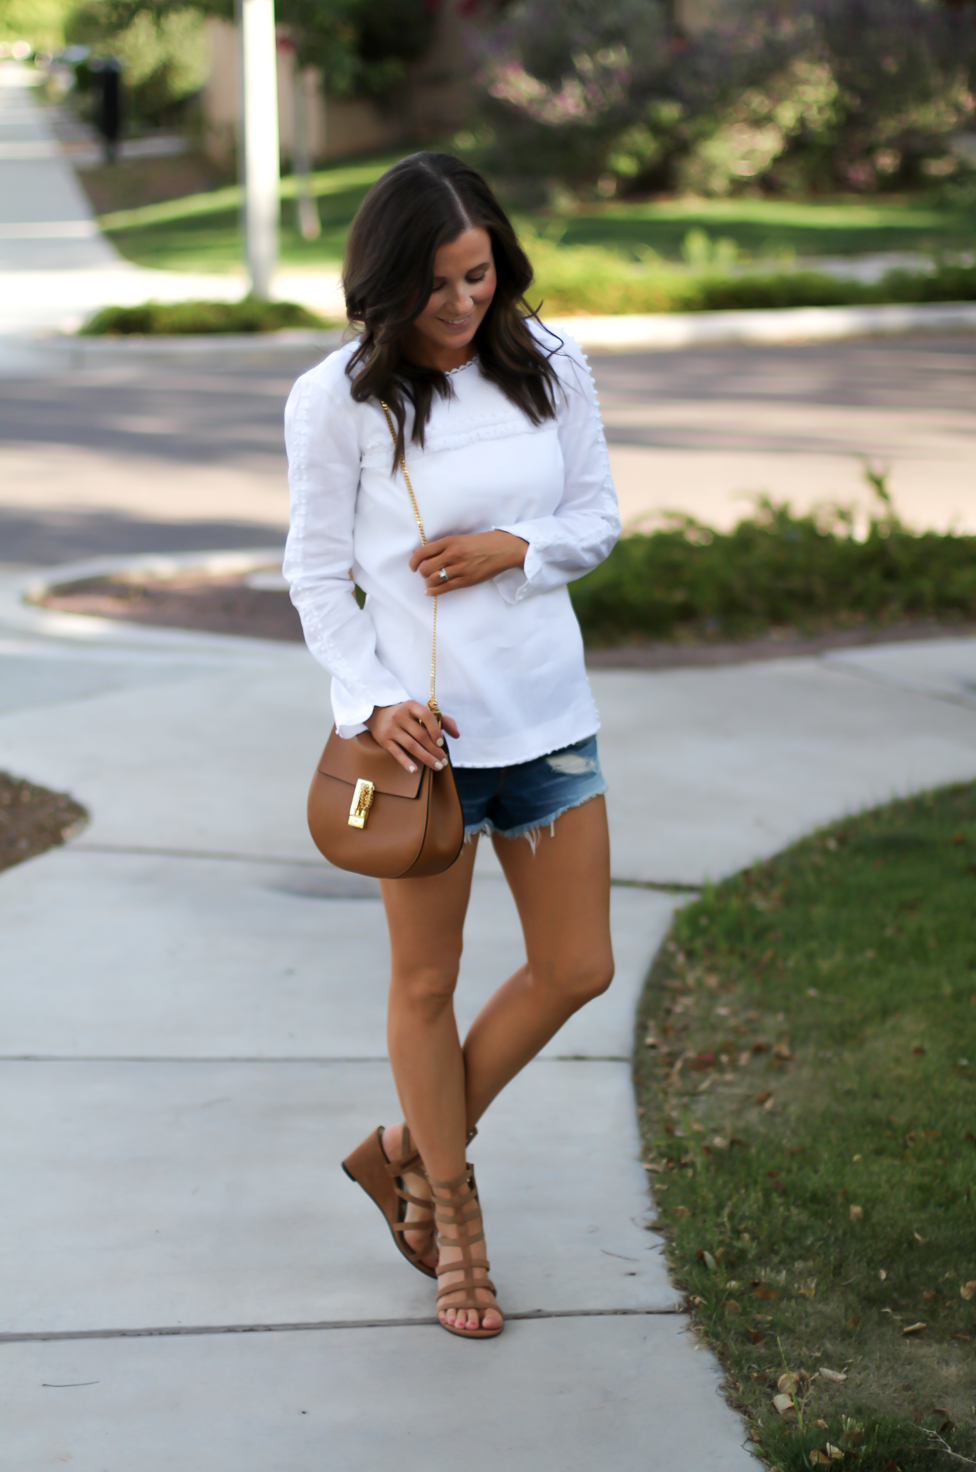 Denim Cutoff Jean Shorts, White Linen Blouse, Gladiator Wedge Sandals, Chain Strap Leather Crossbody Bag, Rag and Bone, J.Crew, Stuart Weitzman, Chloe 3